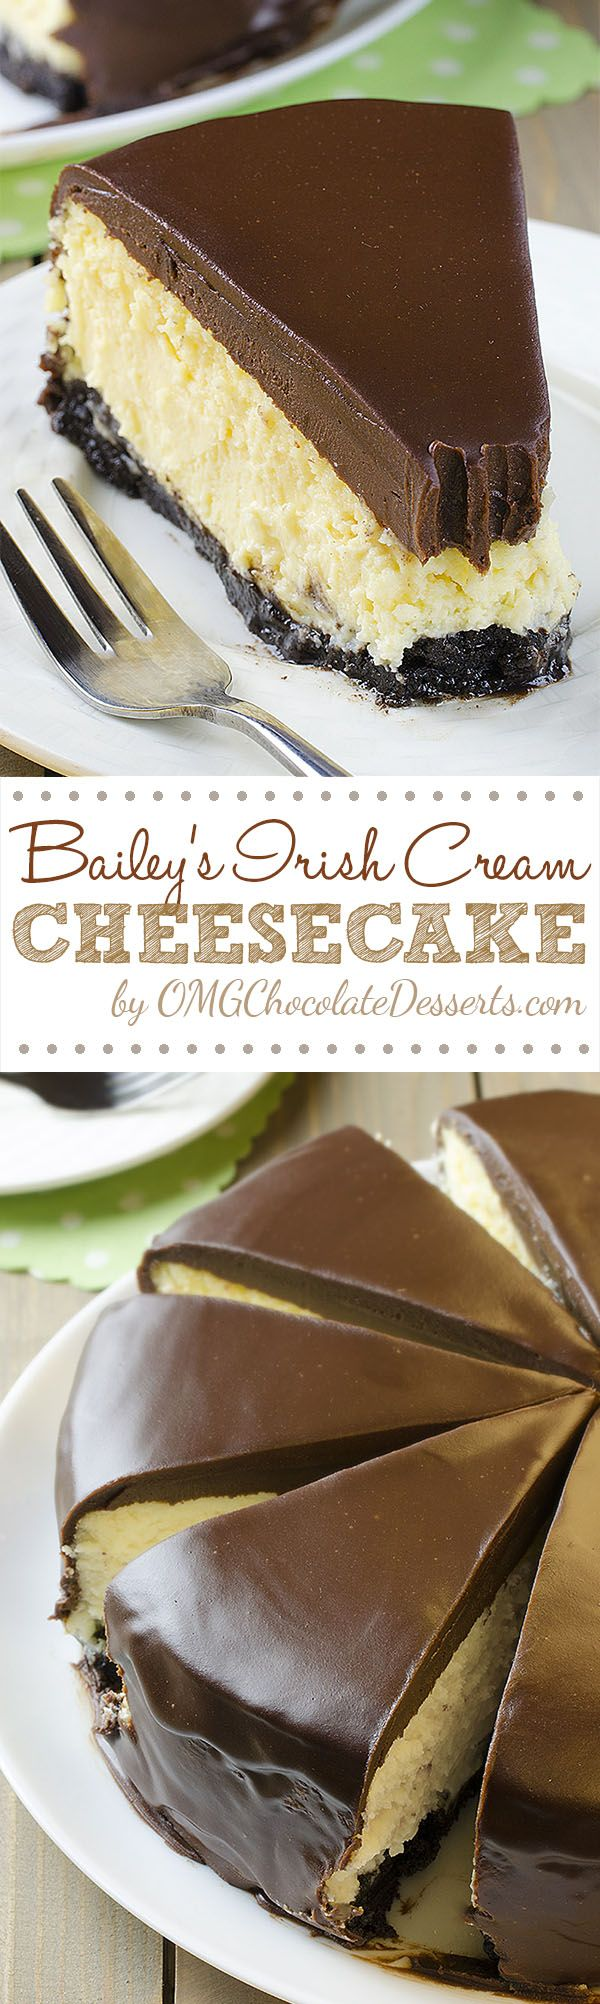 Baileys Irish Cream Cheesecake Recipe Video